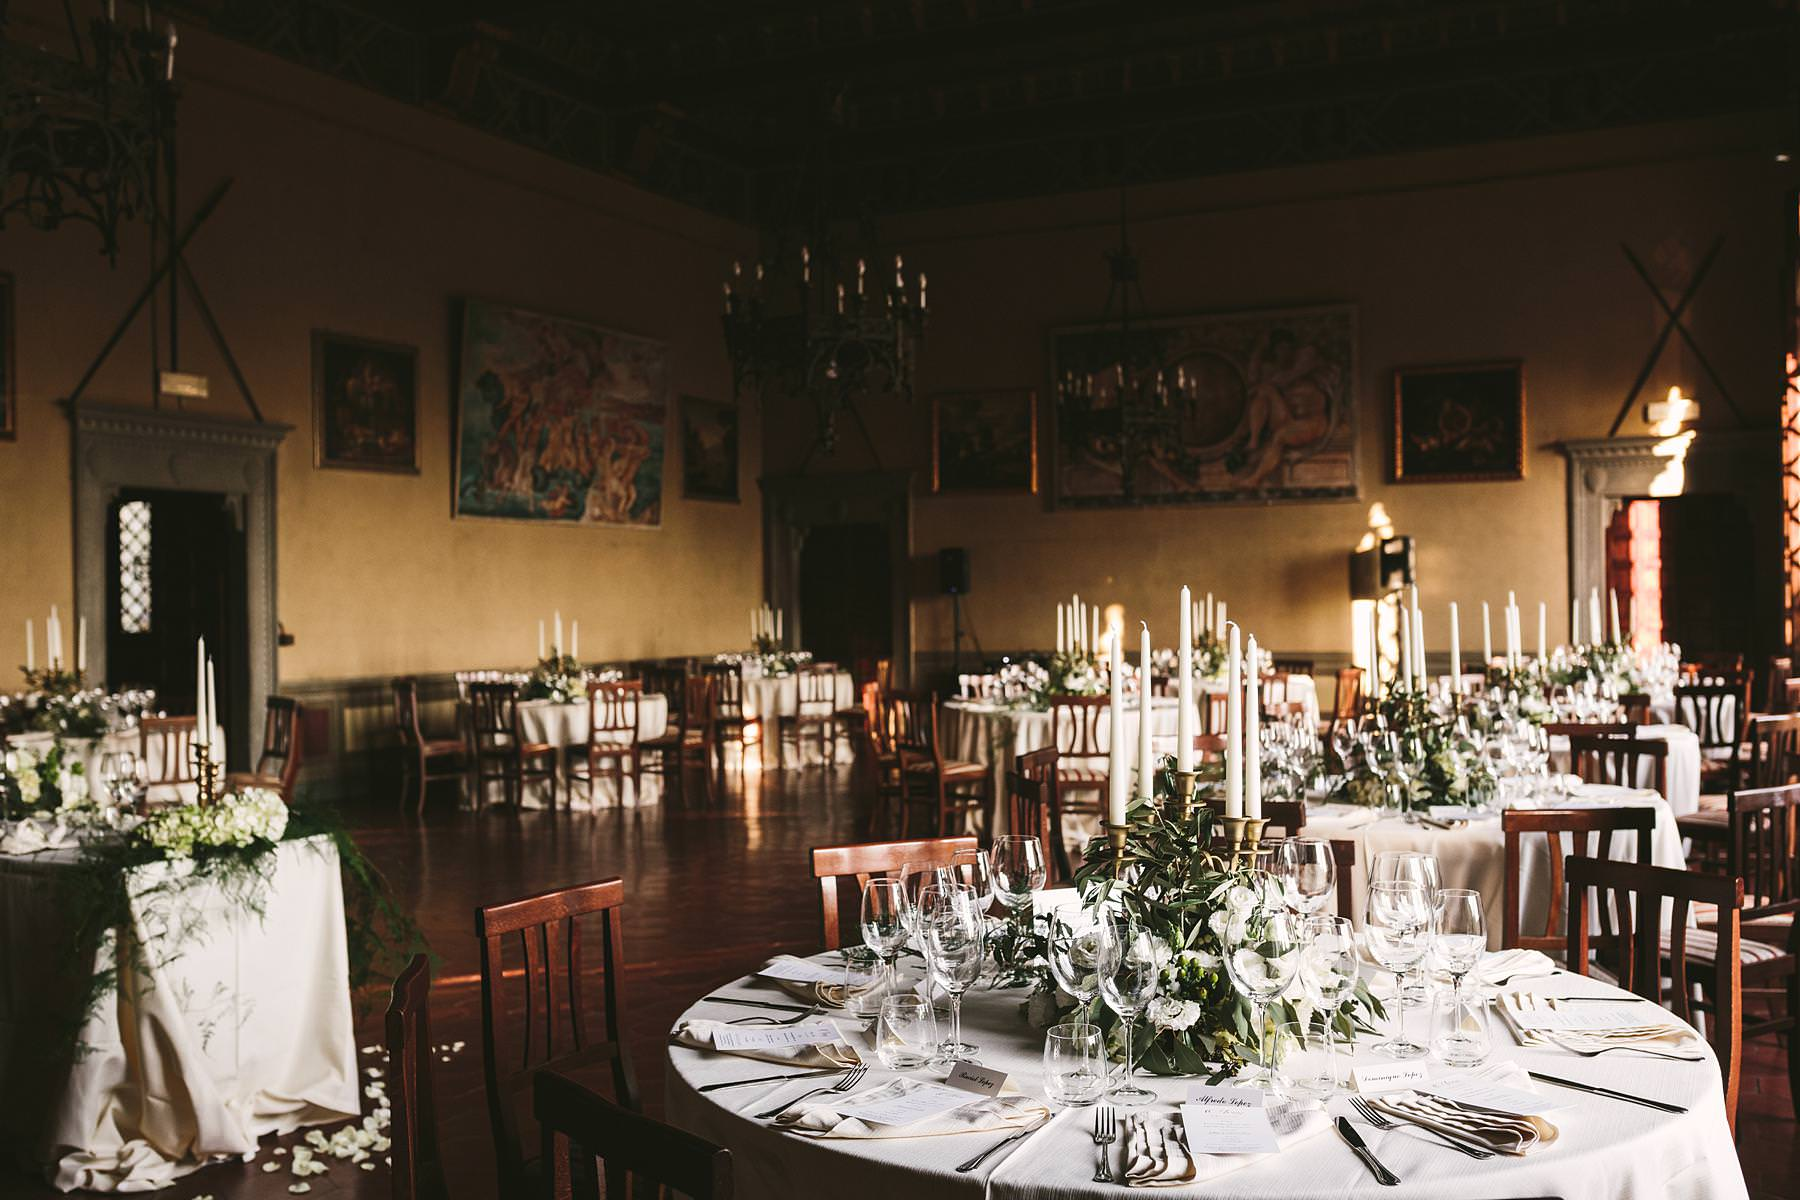 Lovely and elegant dinner decor at Valenzano Castle wedding near Arezzo in the Tuscany countryside